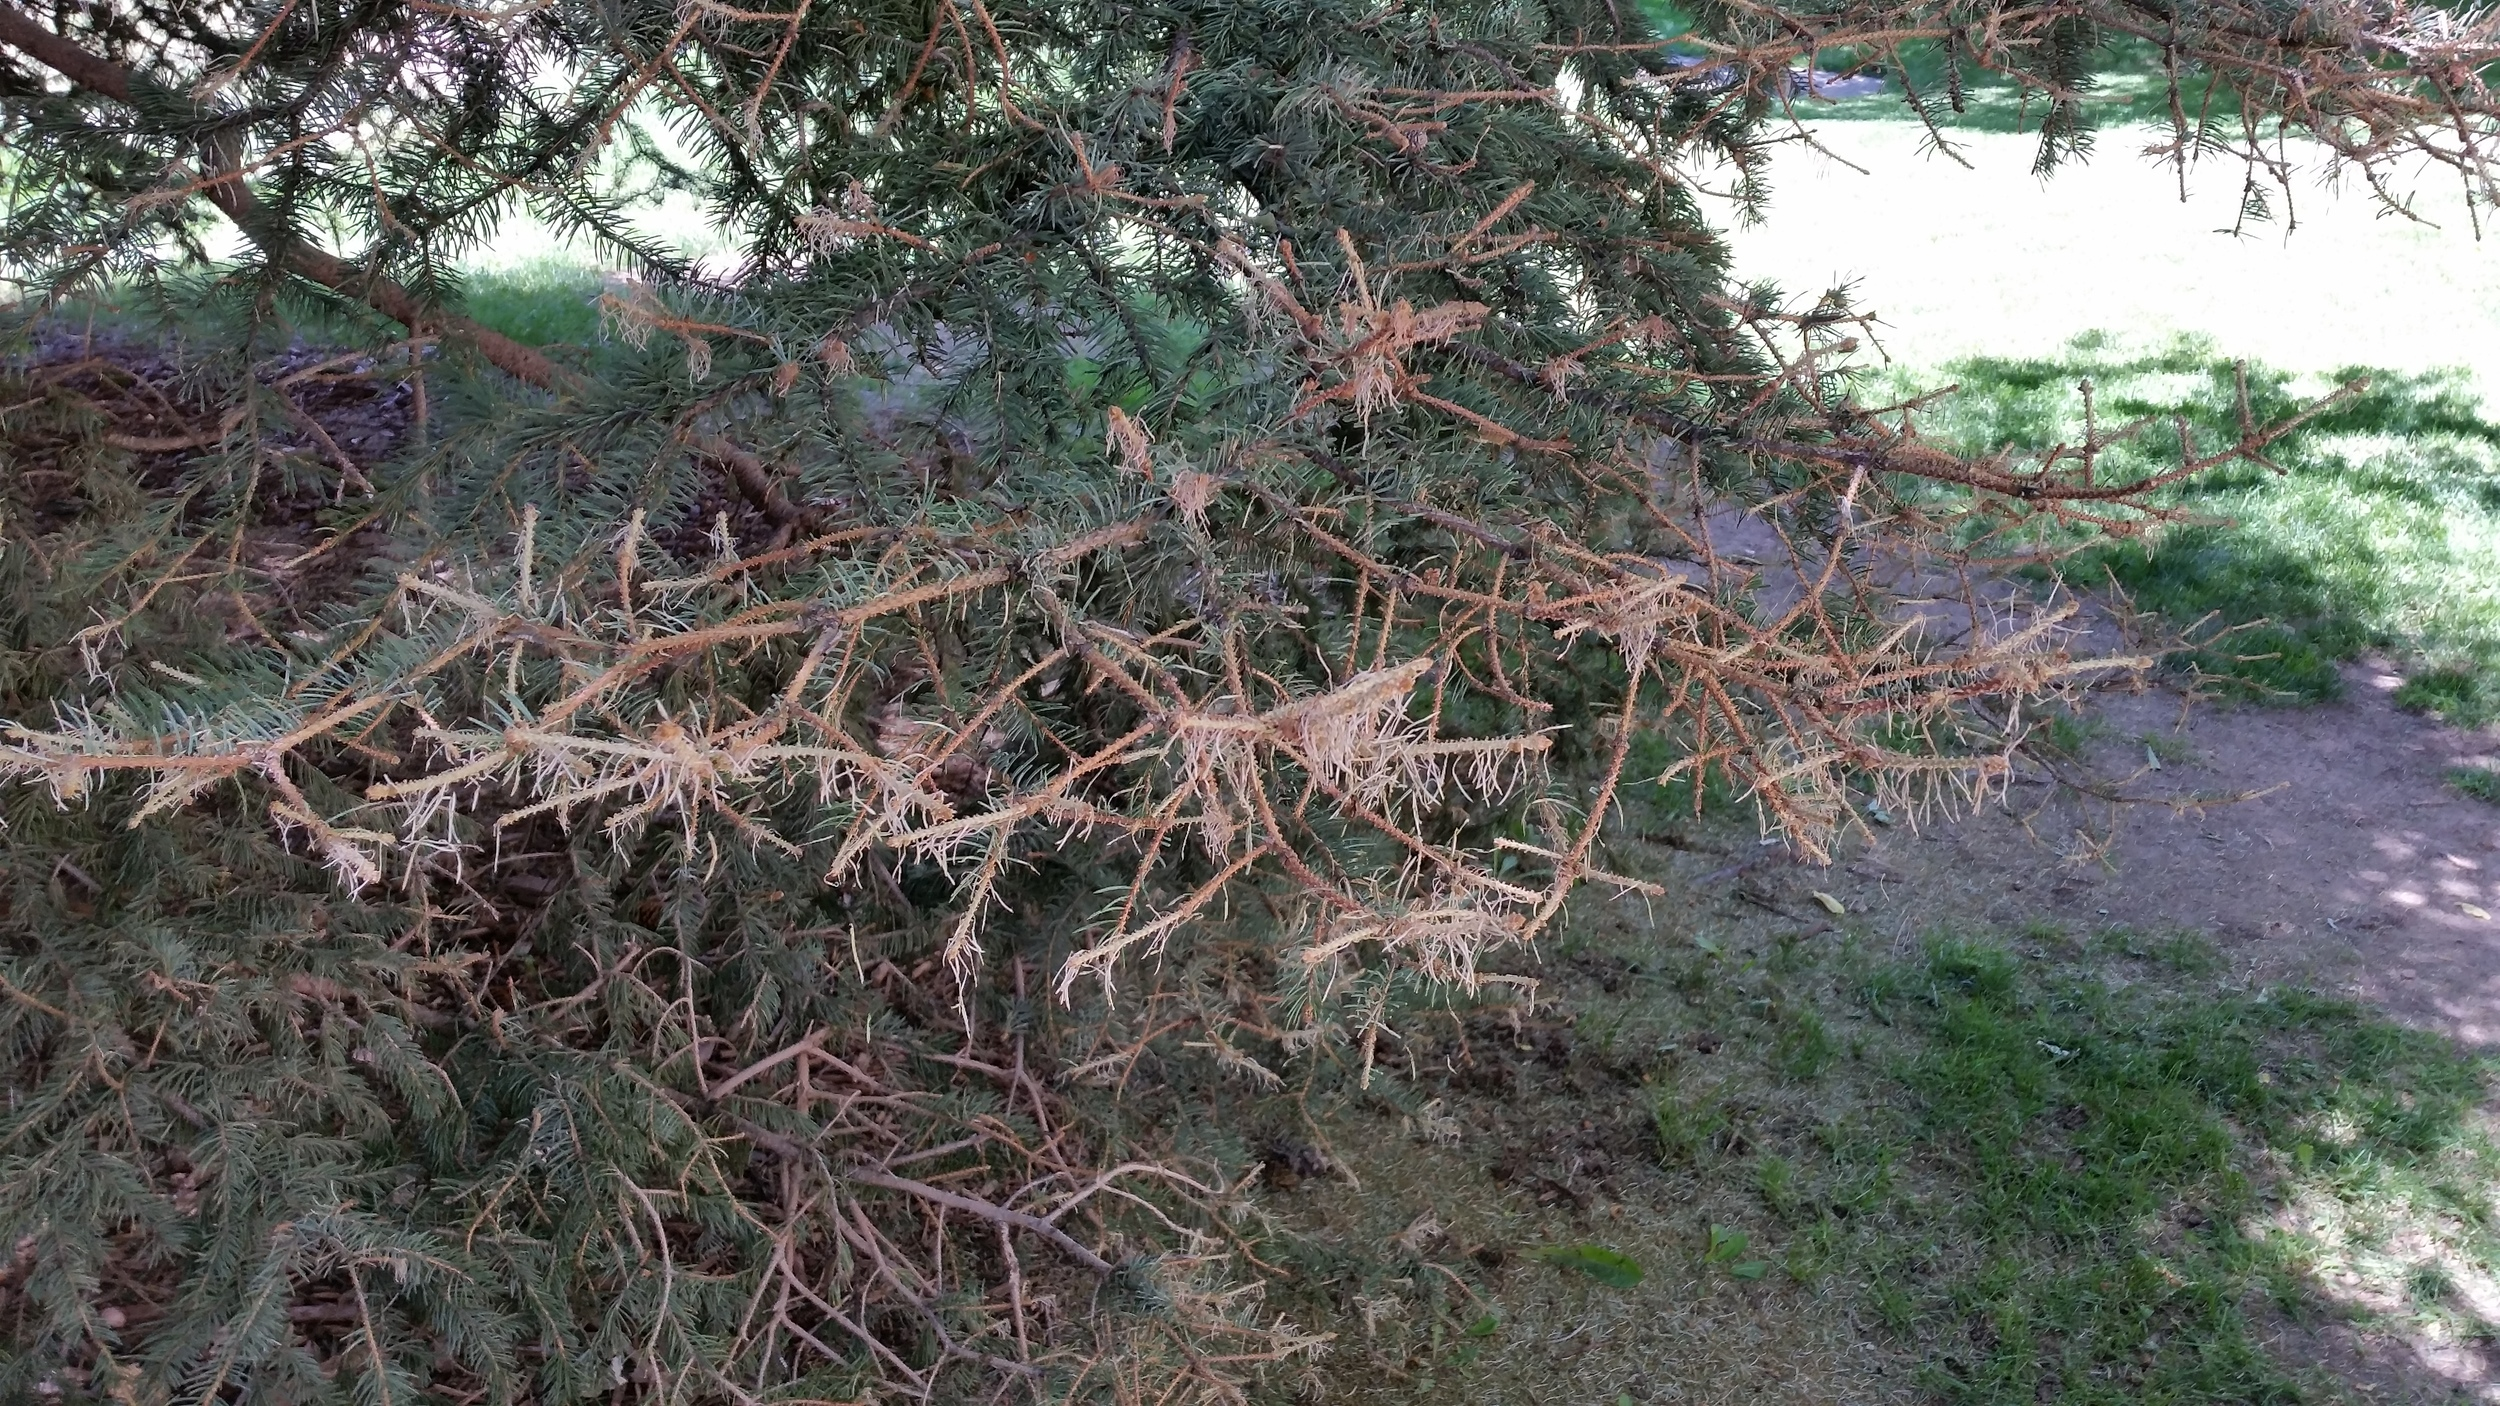 A branch that has been entirely defoliated by the DFTM caterpillars